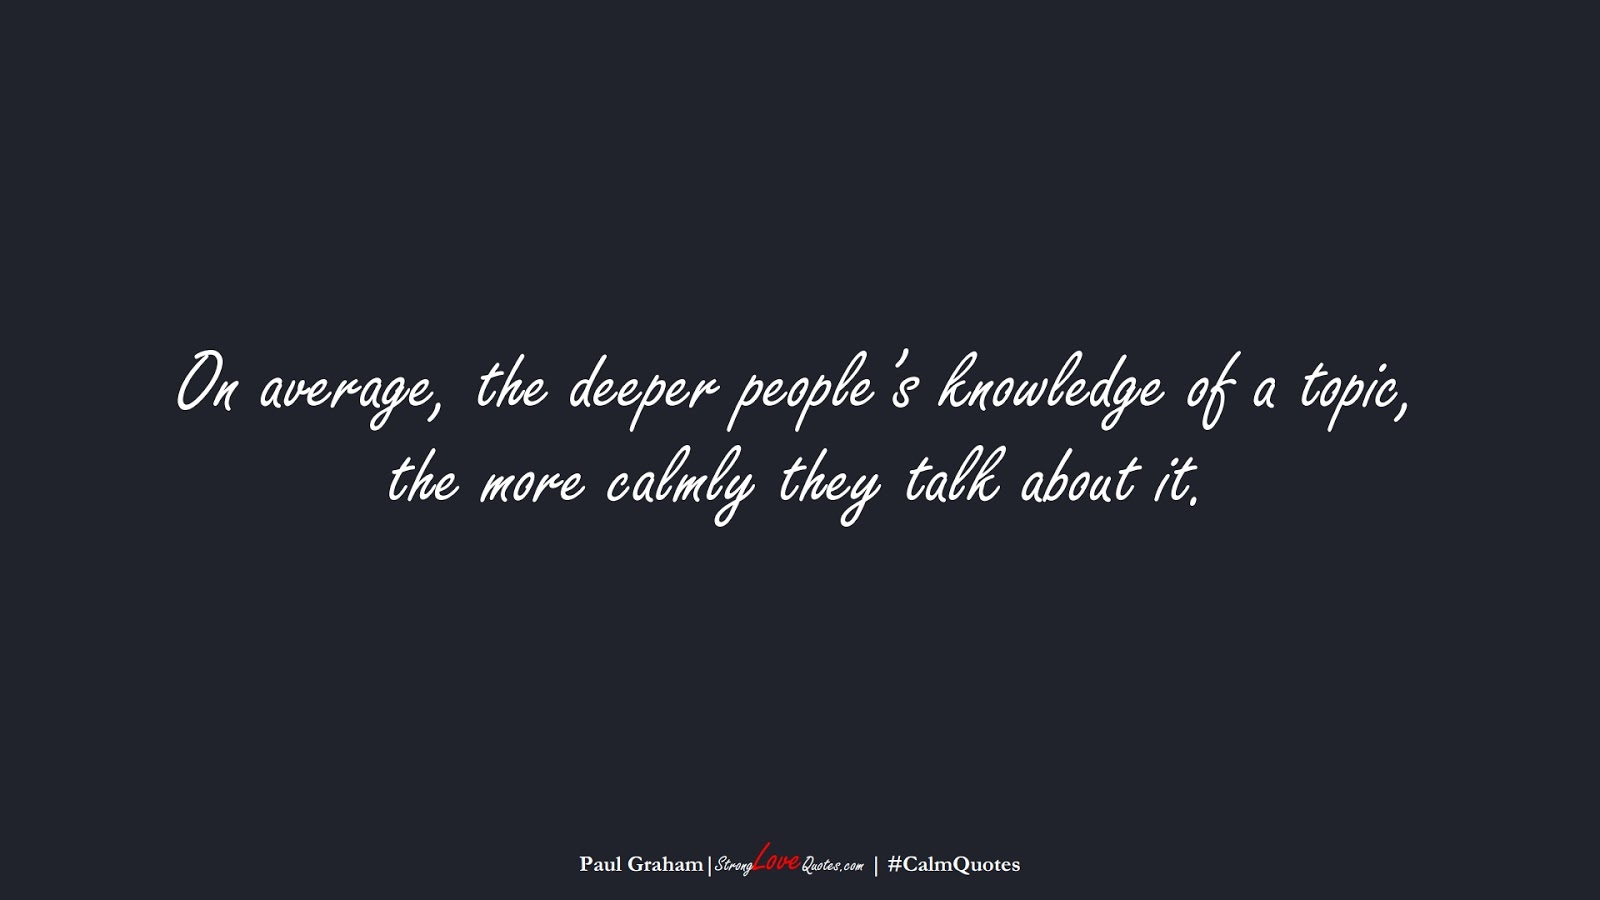 On average, the deeper people's knowledge of a topic, the more calmly they talk about it. (Paul Graham);  #CalmQuotes